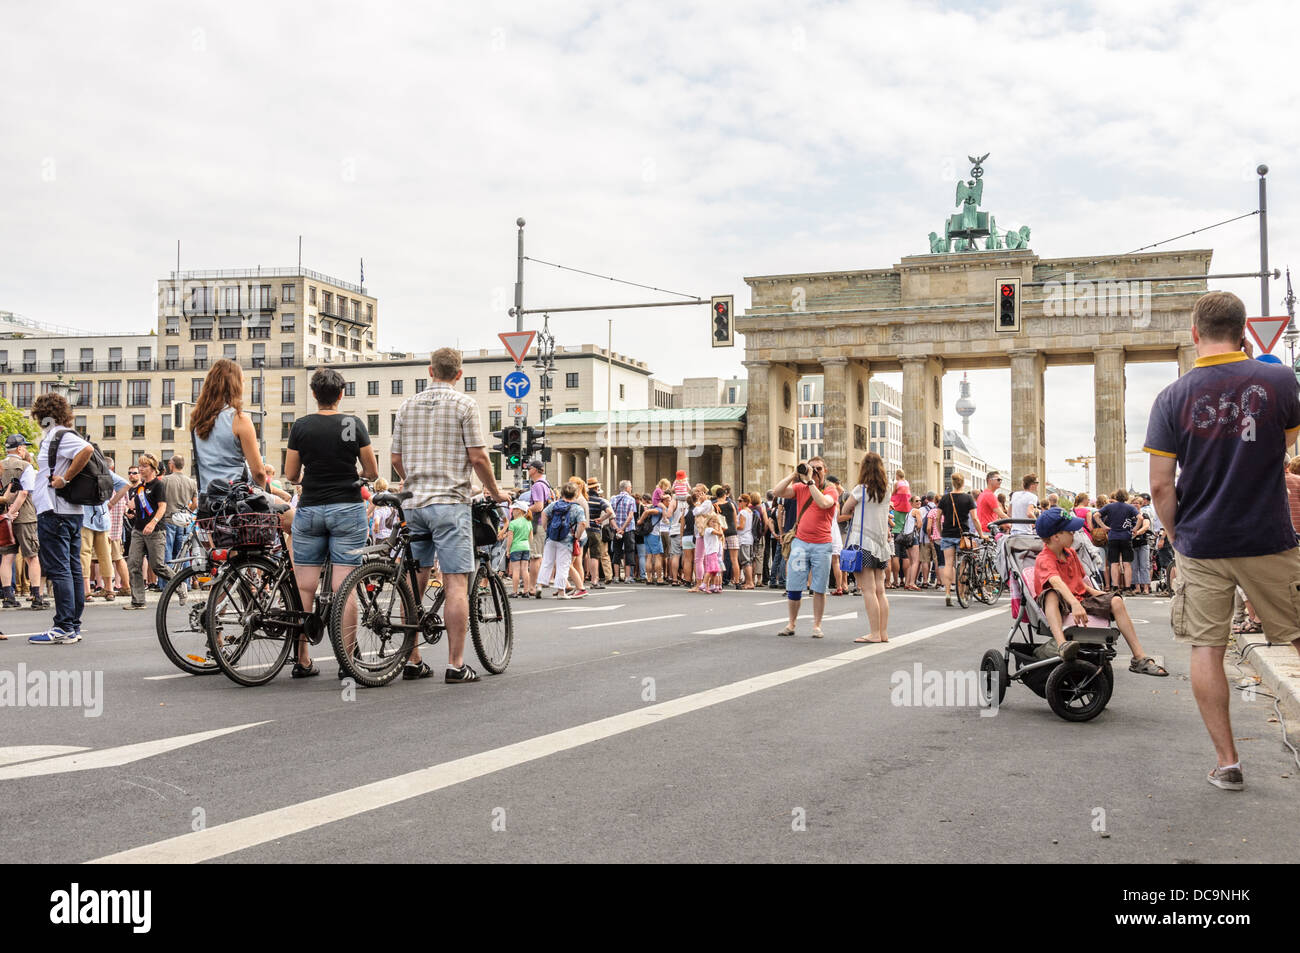 Many people on the 17th of June Street and Square and Brandenburg Gate, participating in a public event – Berlin Stock Photo